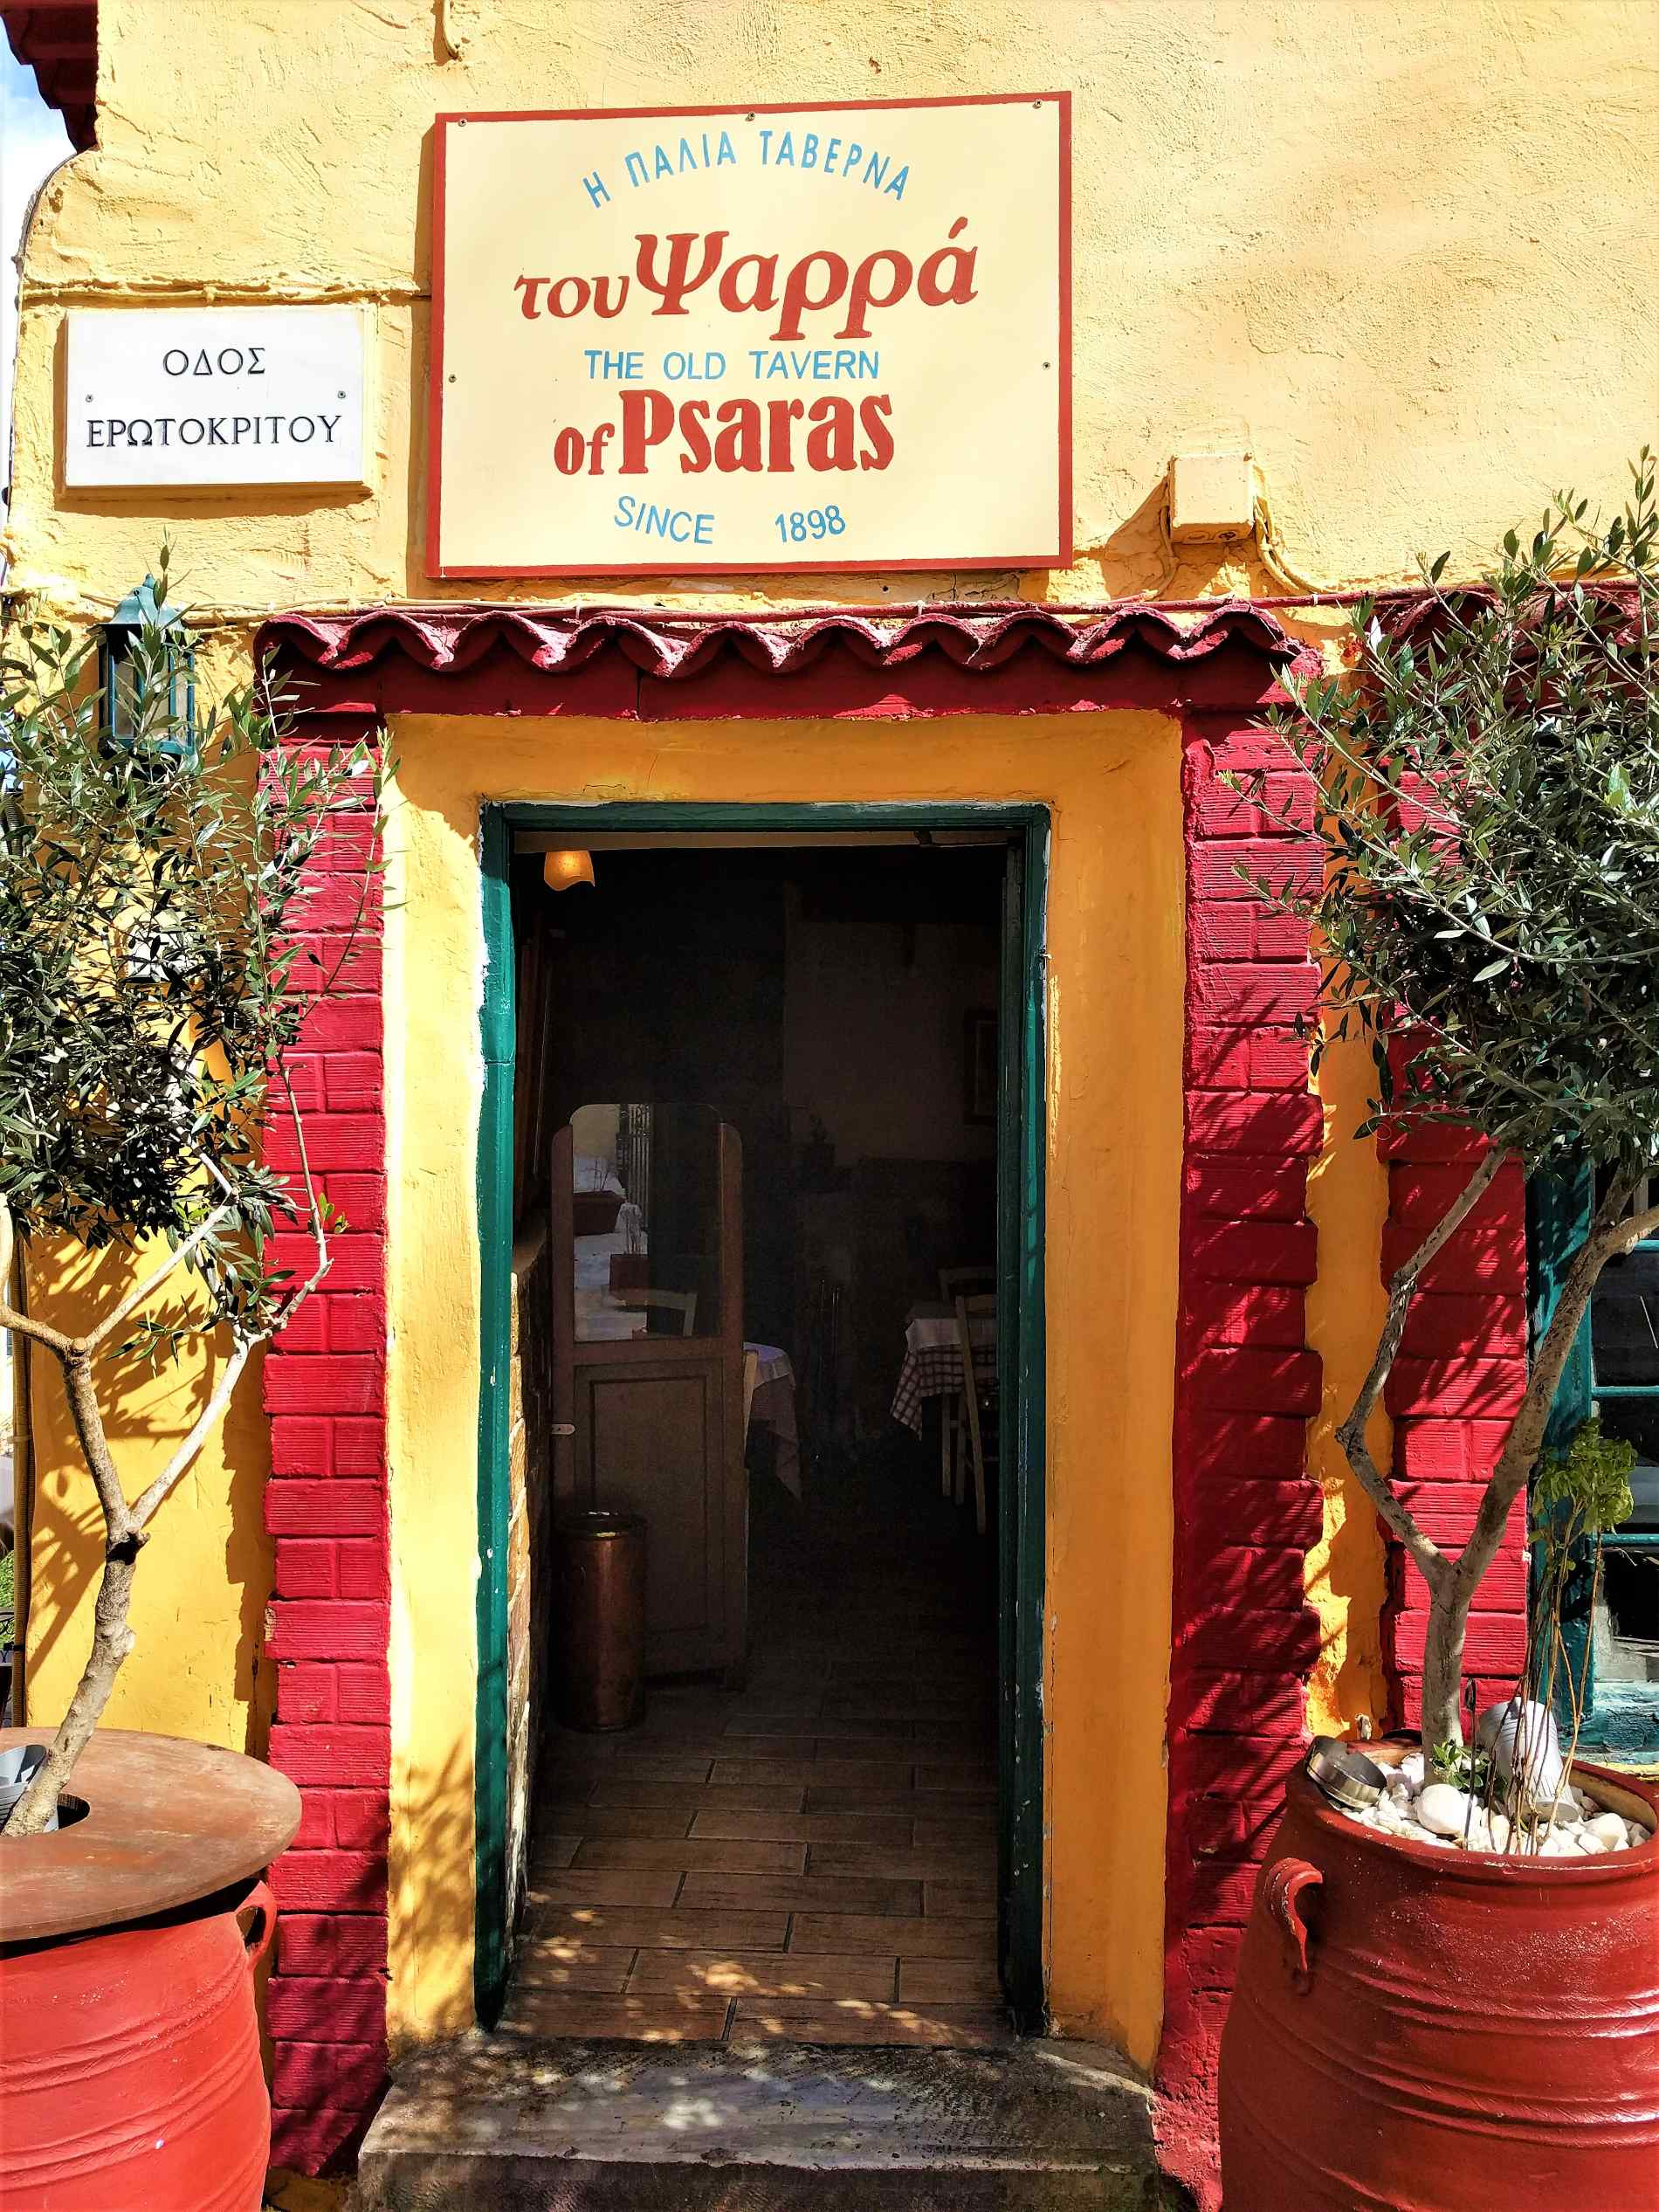 The old tavern of Psaras  offers delicious and traditional Greek food at reasonable prices.